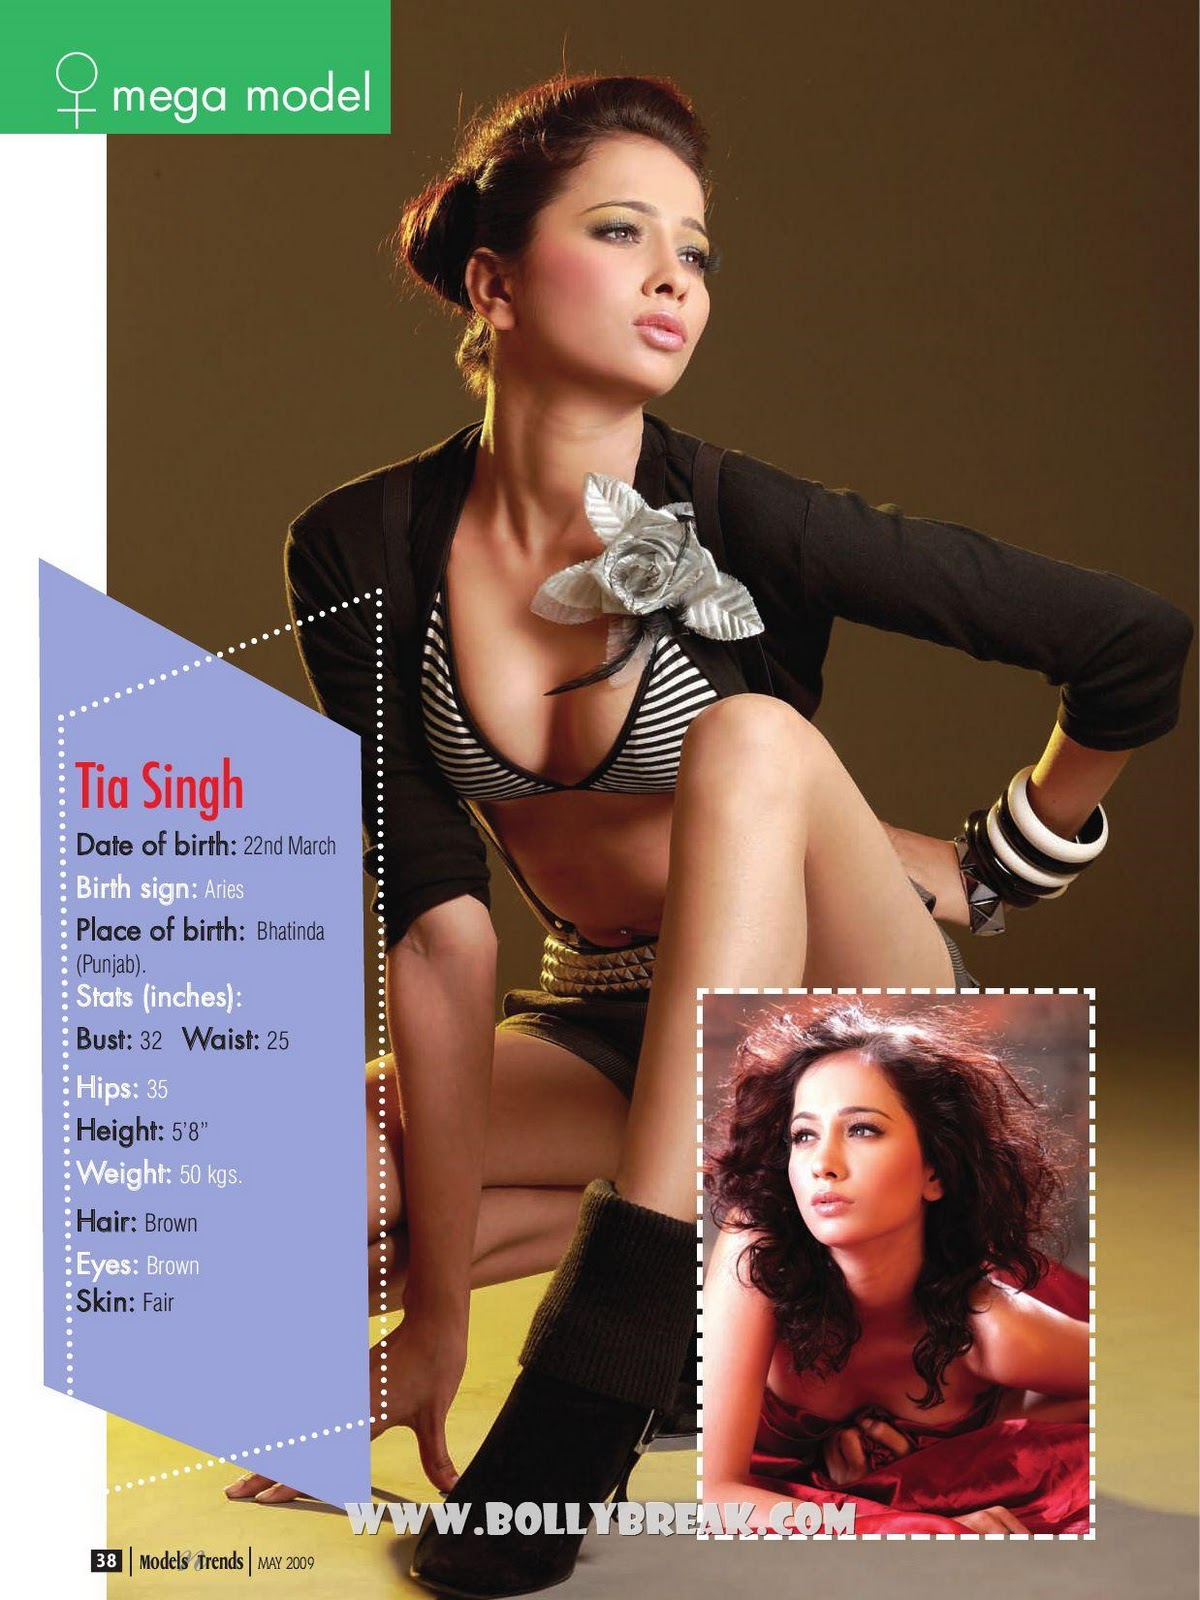 , Hot Indian Mega Models - Tia Singh, Ggunjun, Neetika